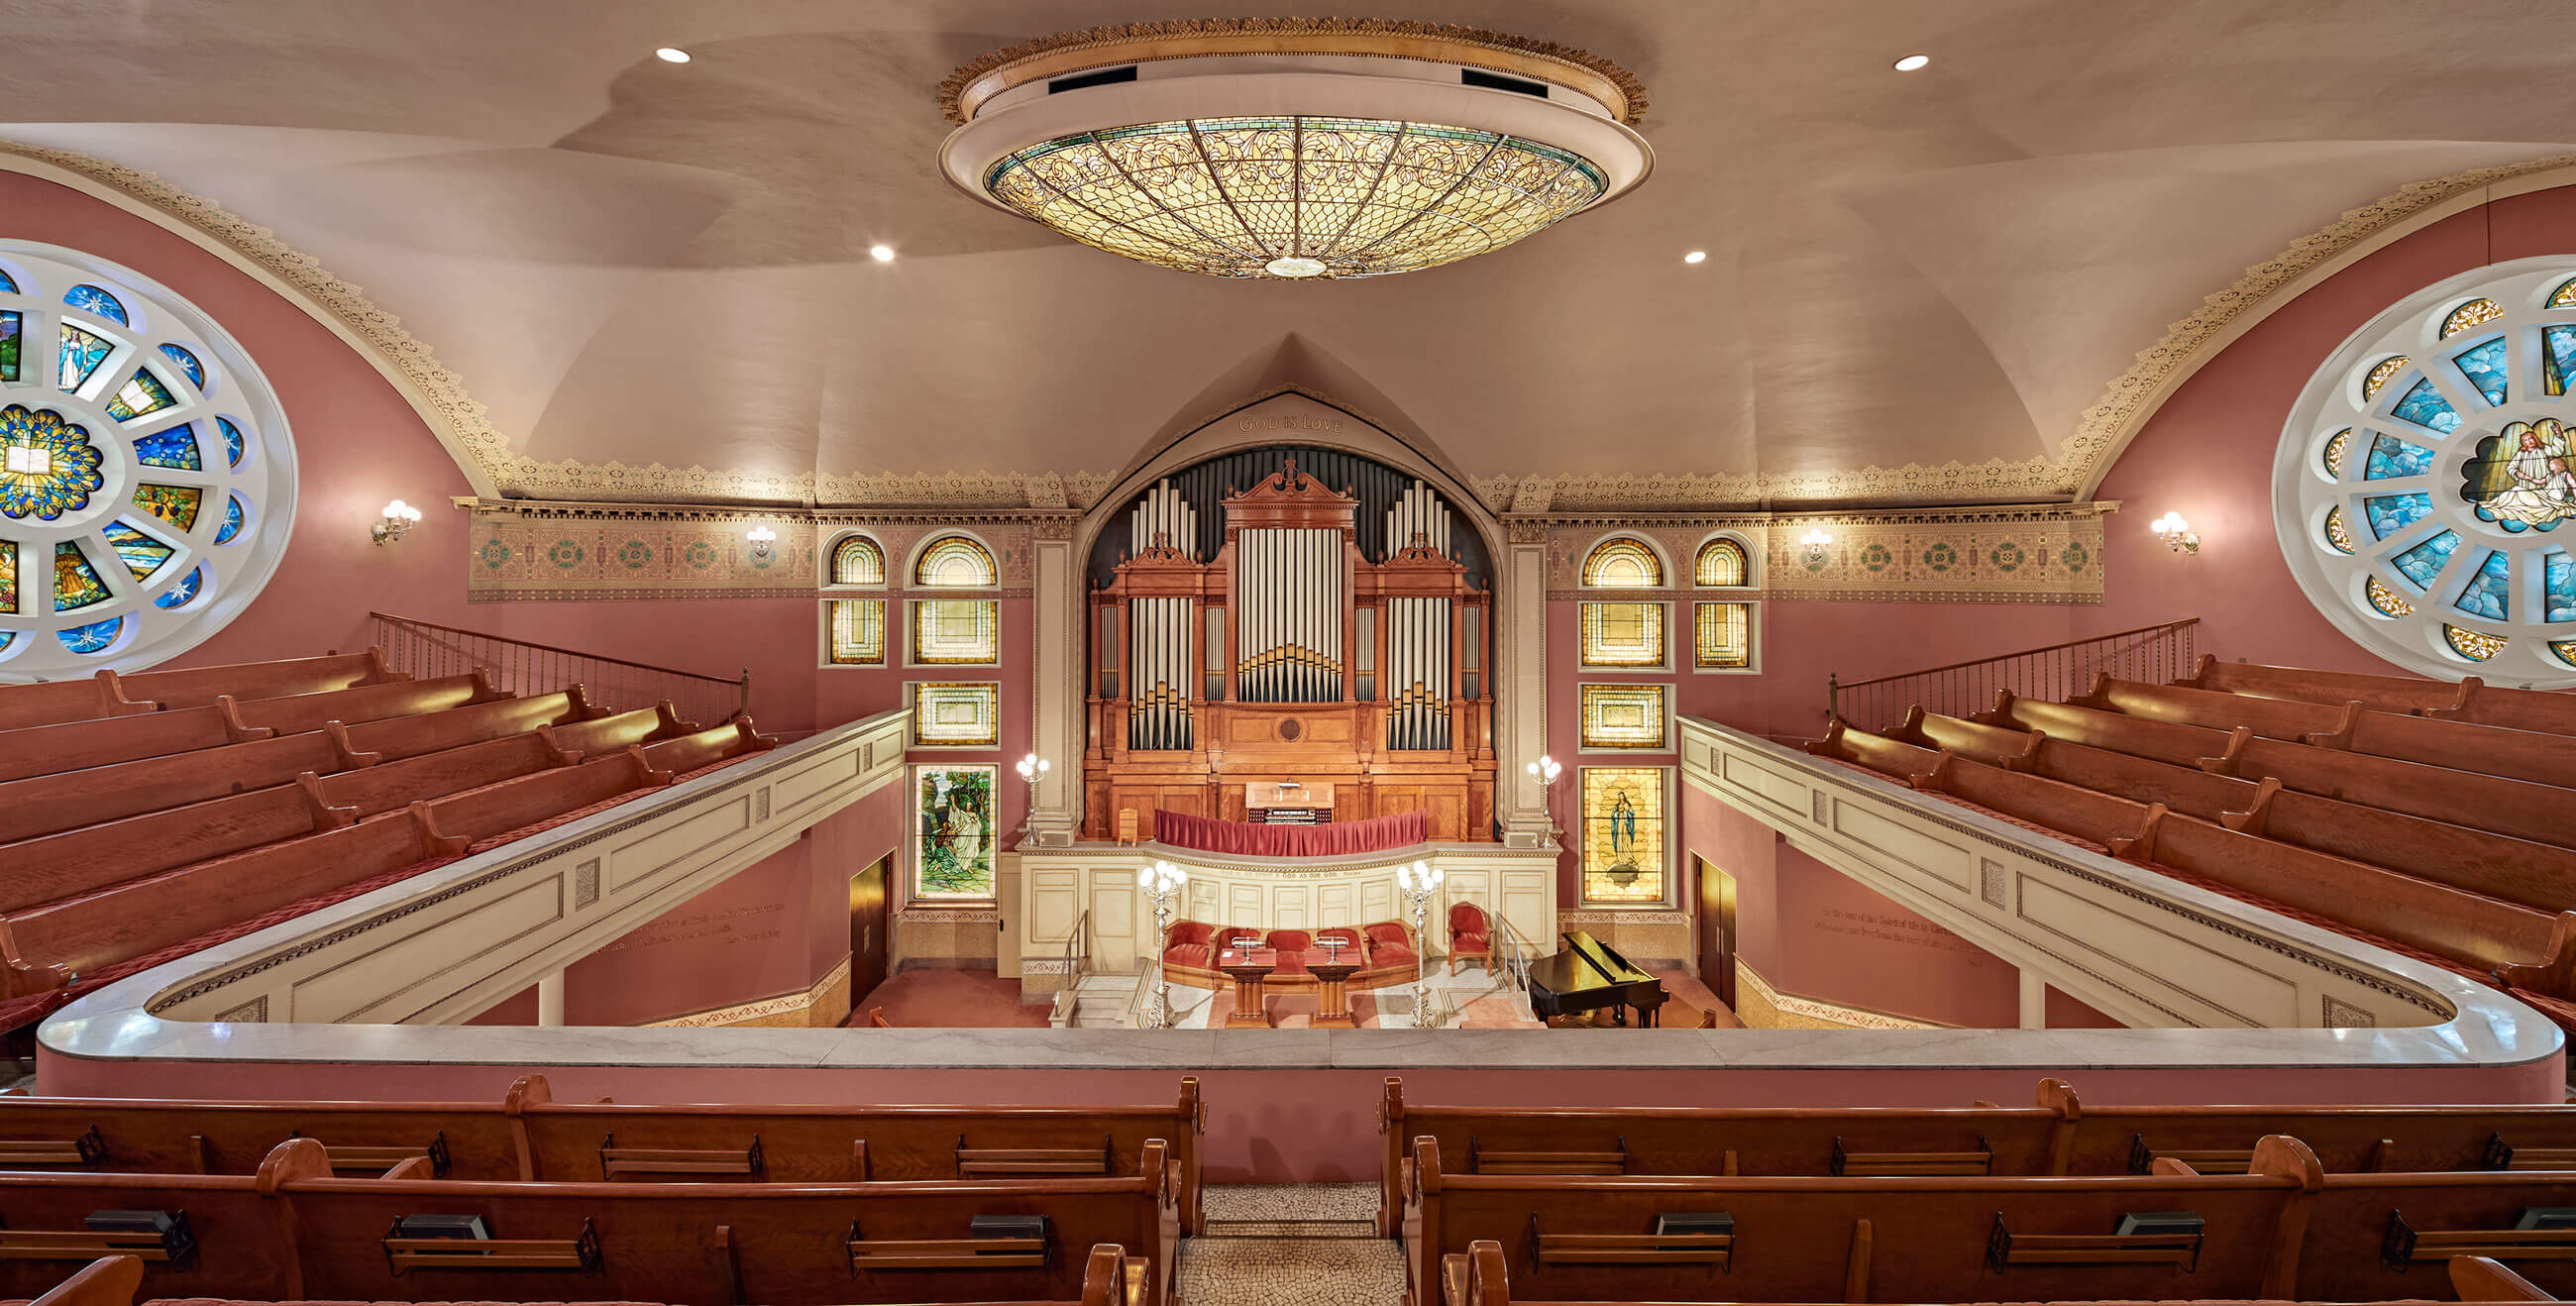 Panoramic view of the altar, organ, pews and balcony, framed by two rose windows.